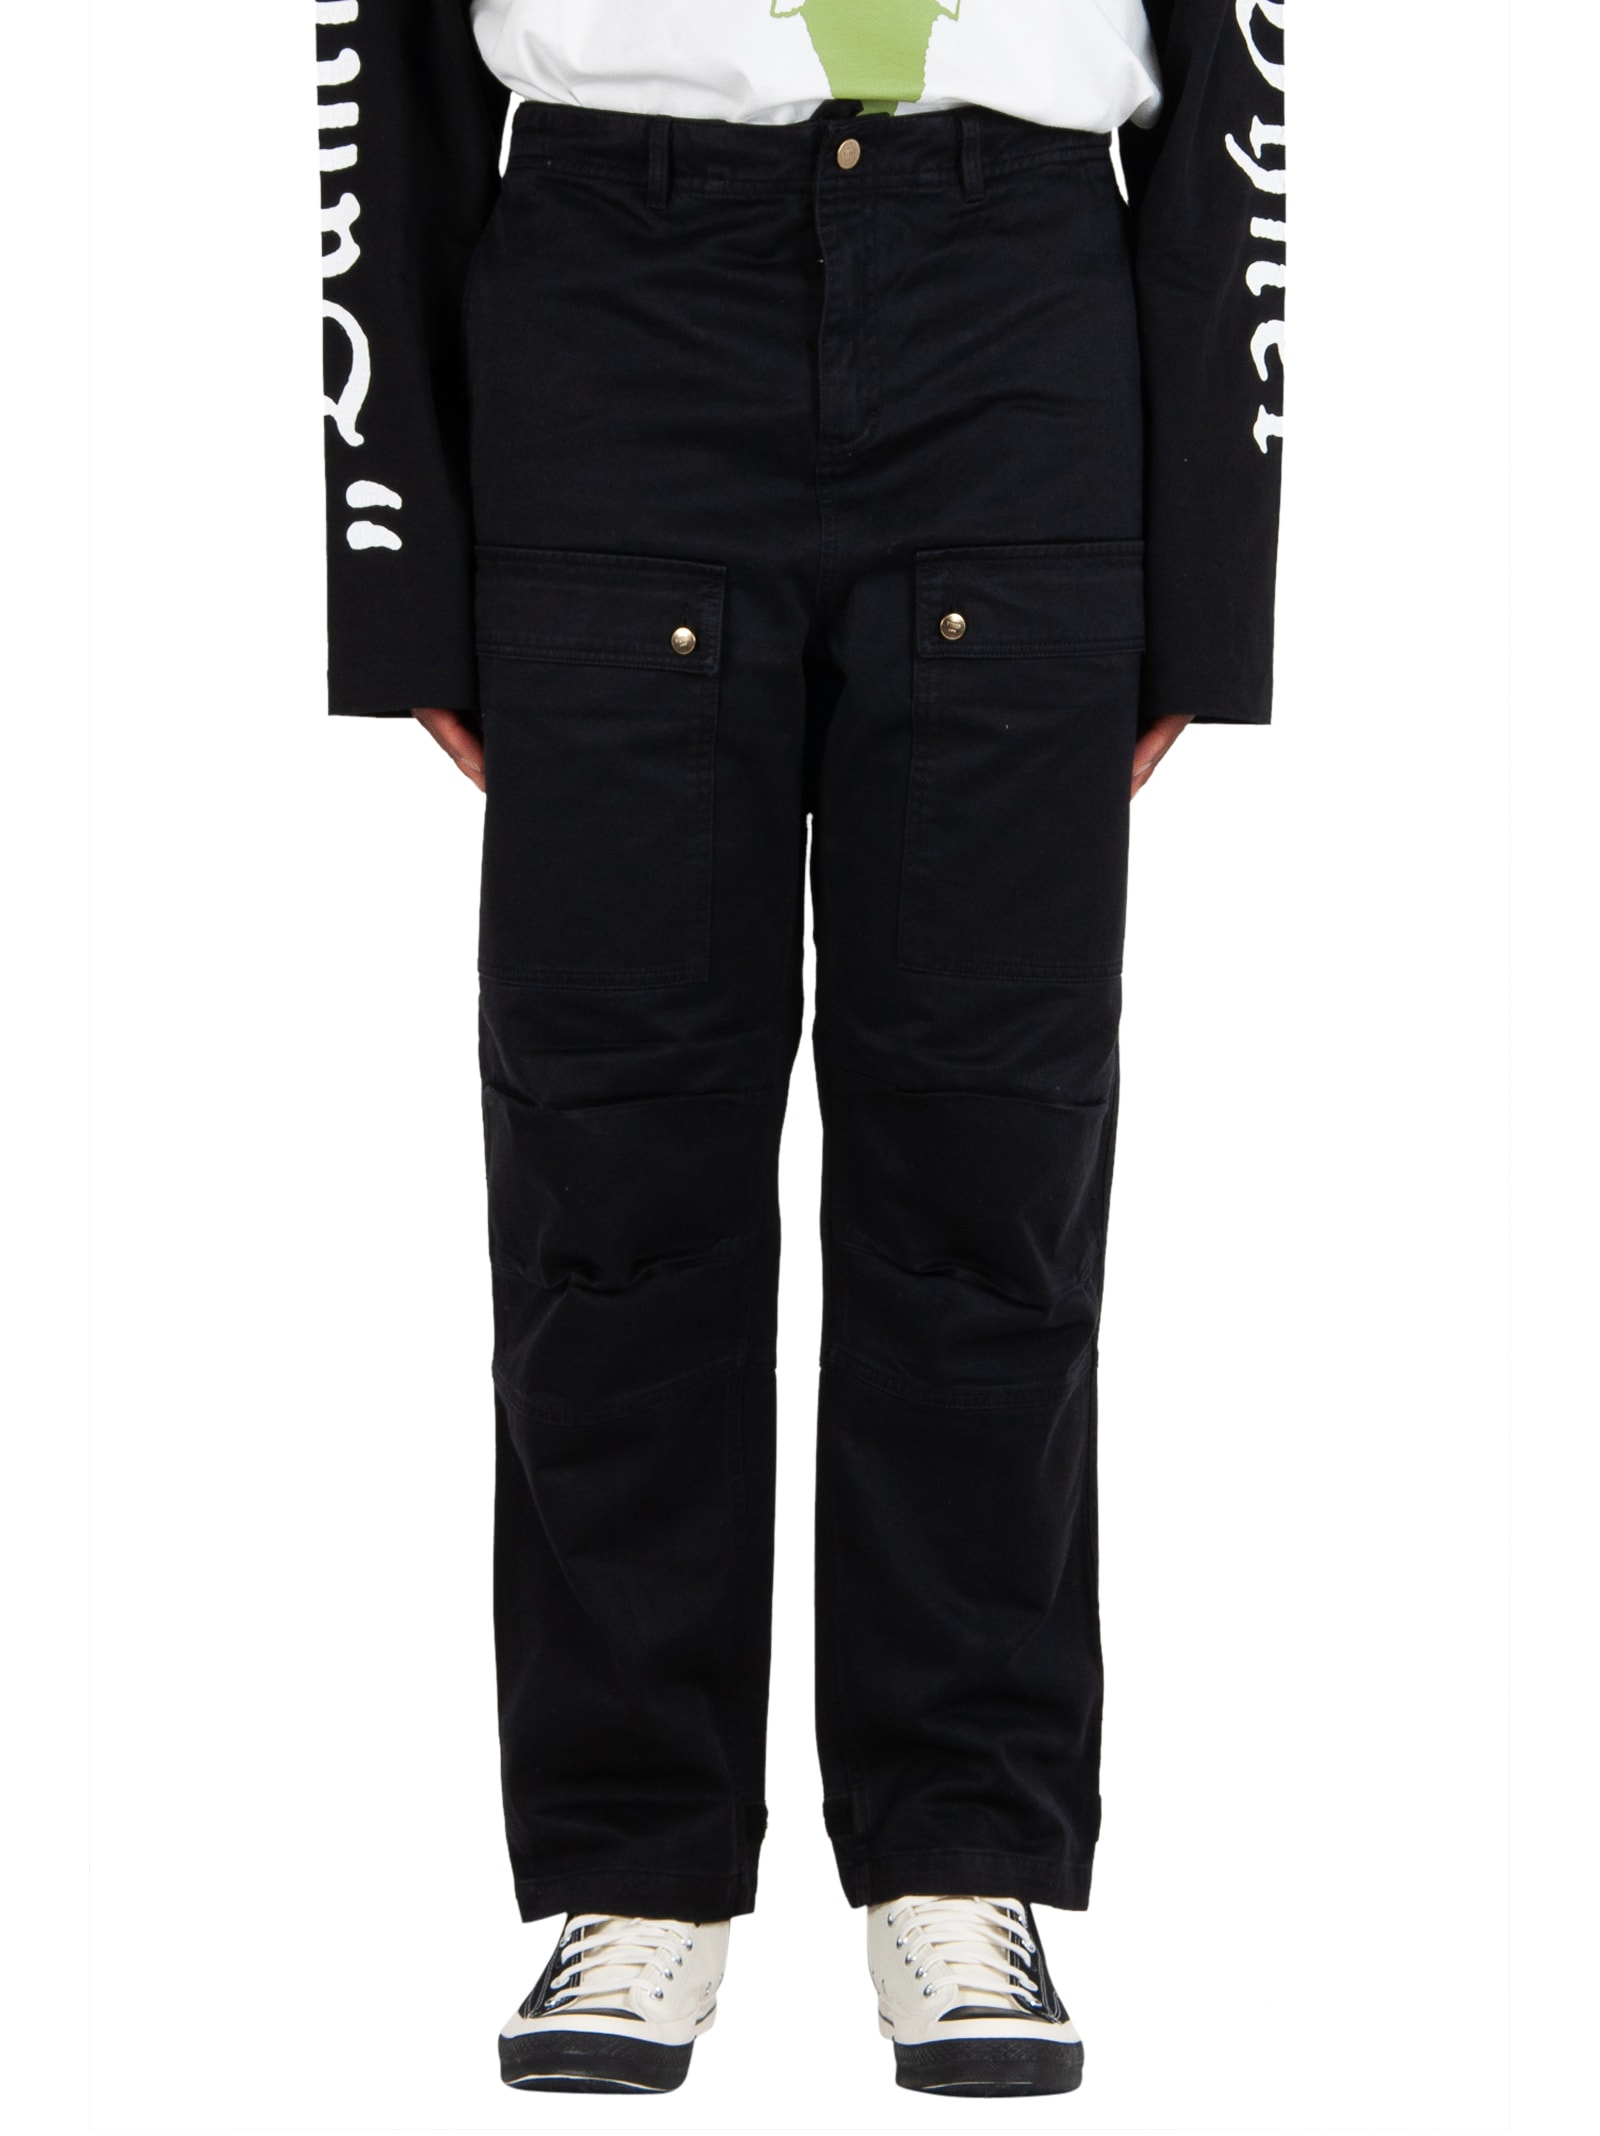 Vyner Articles Wit Cargo Pant - Black